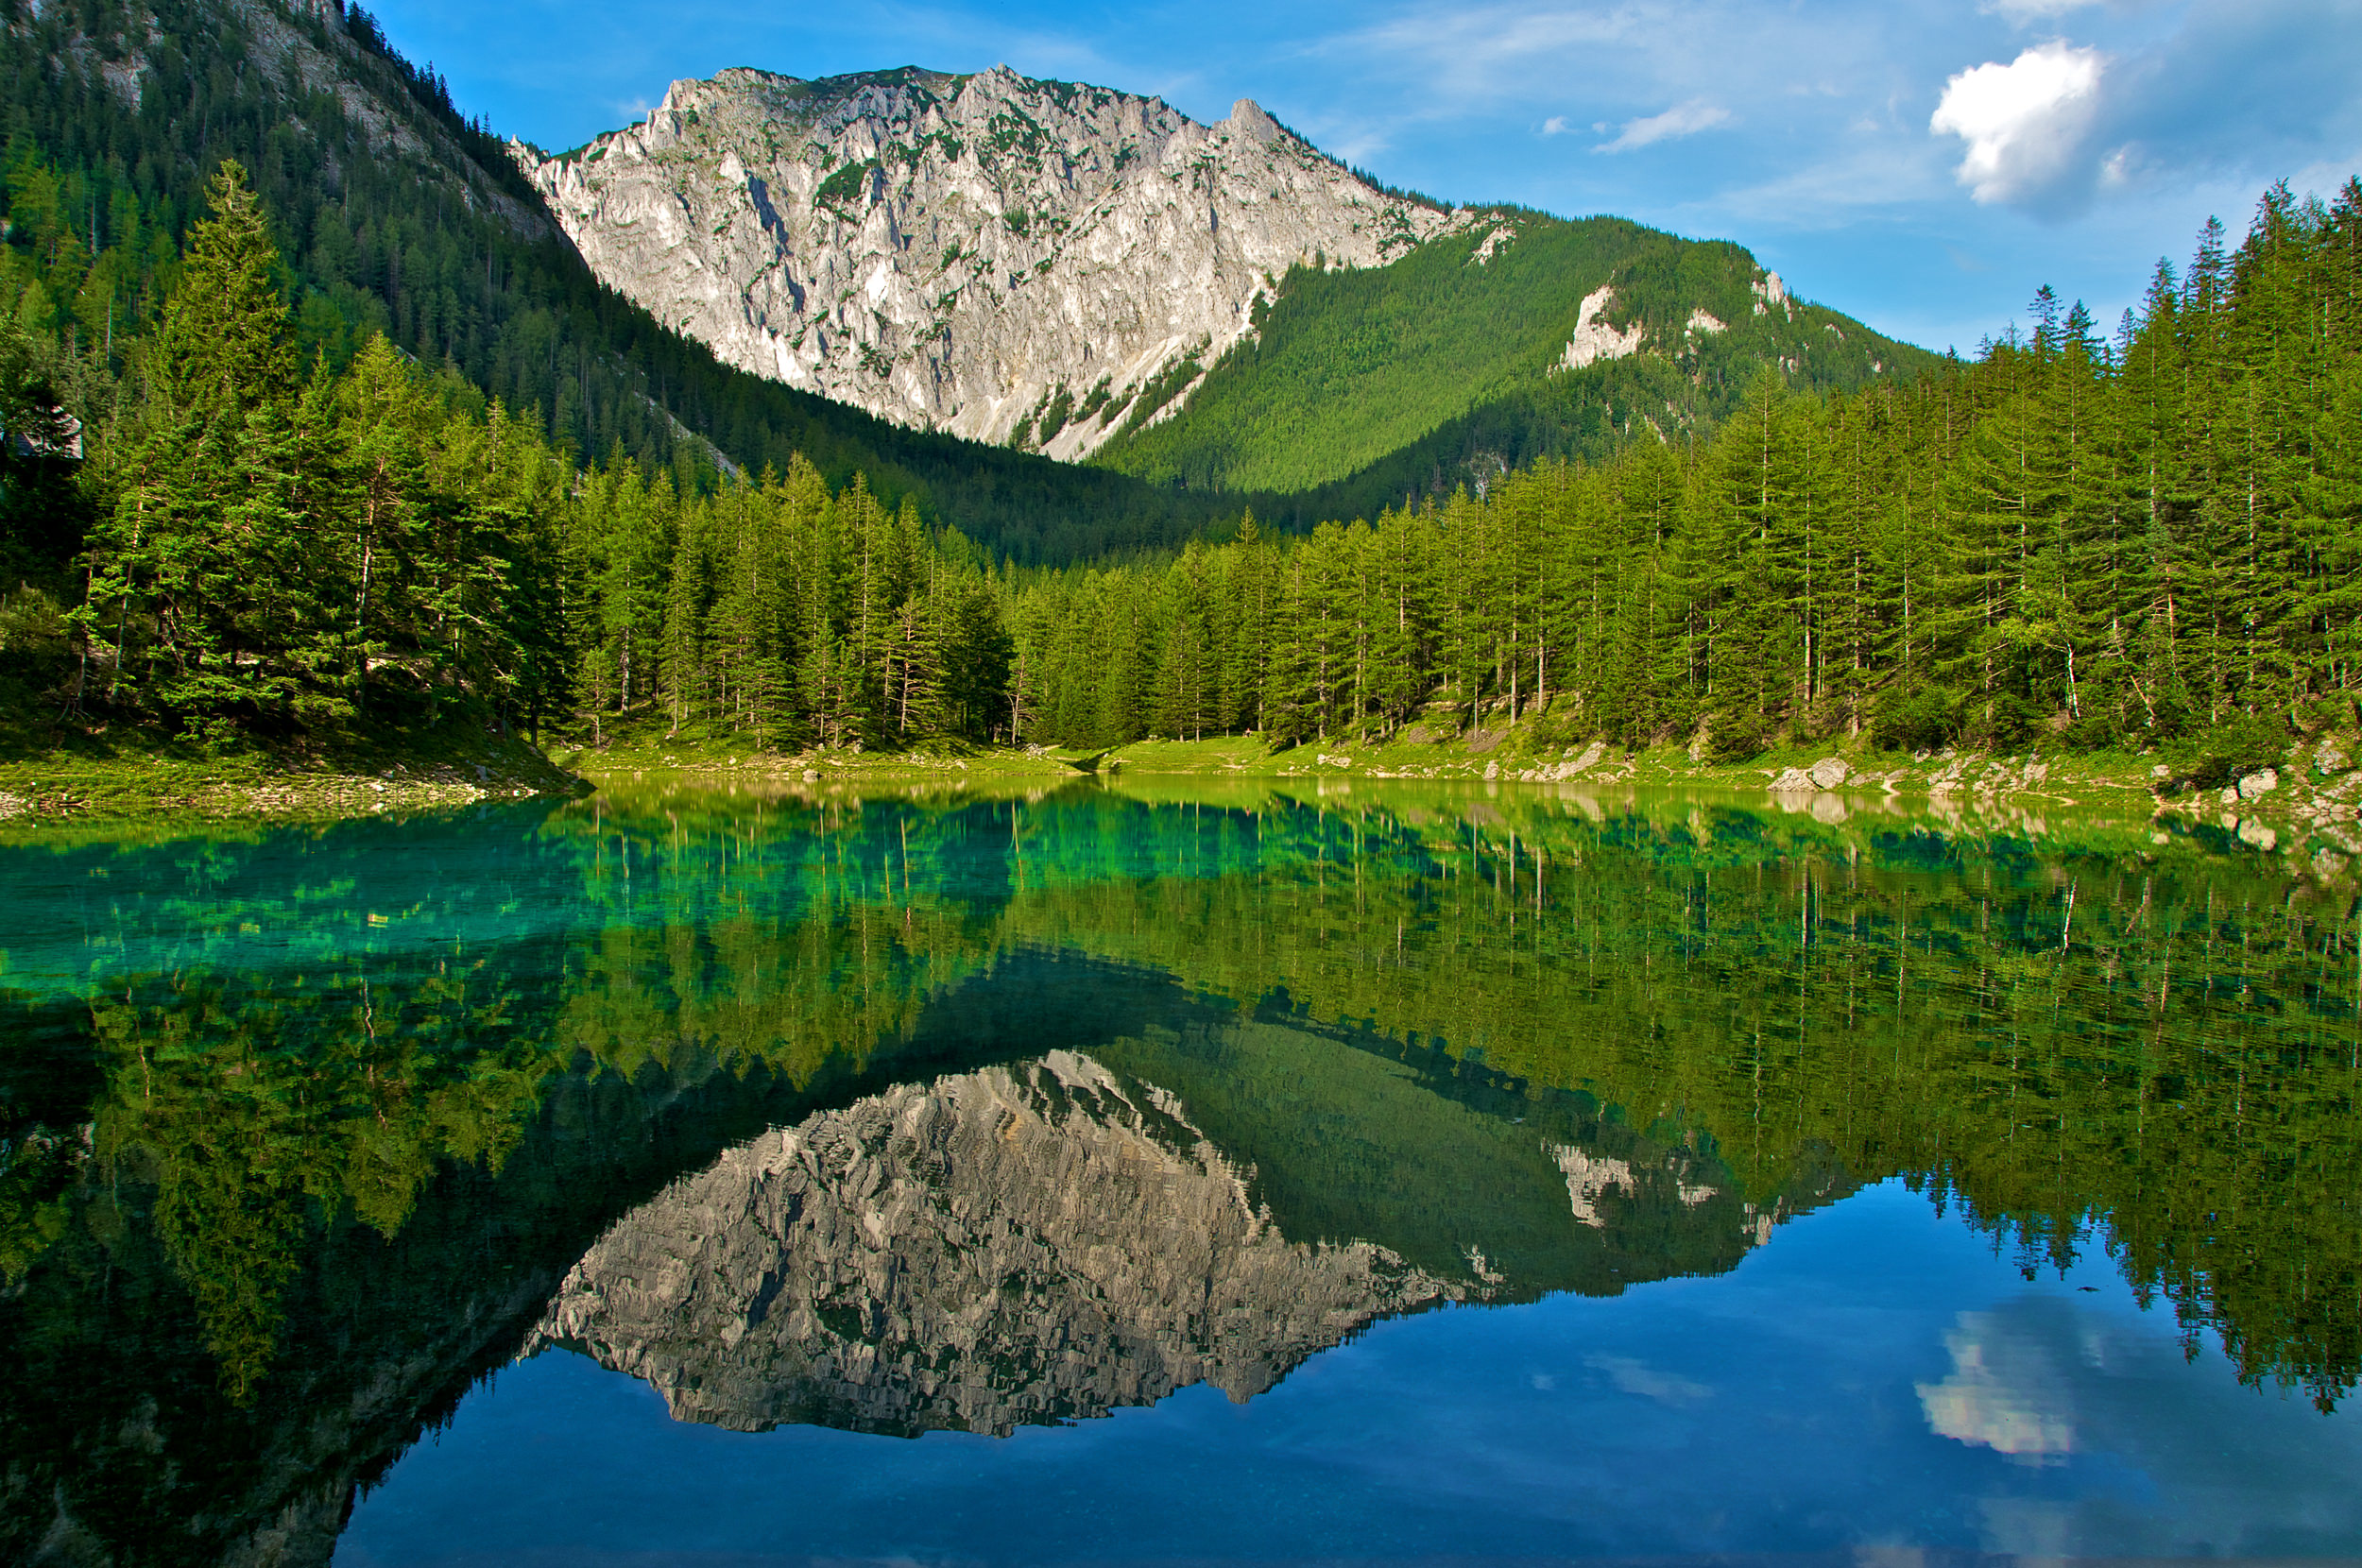 The Grüner See in Austria